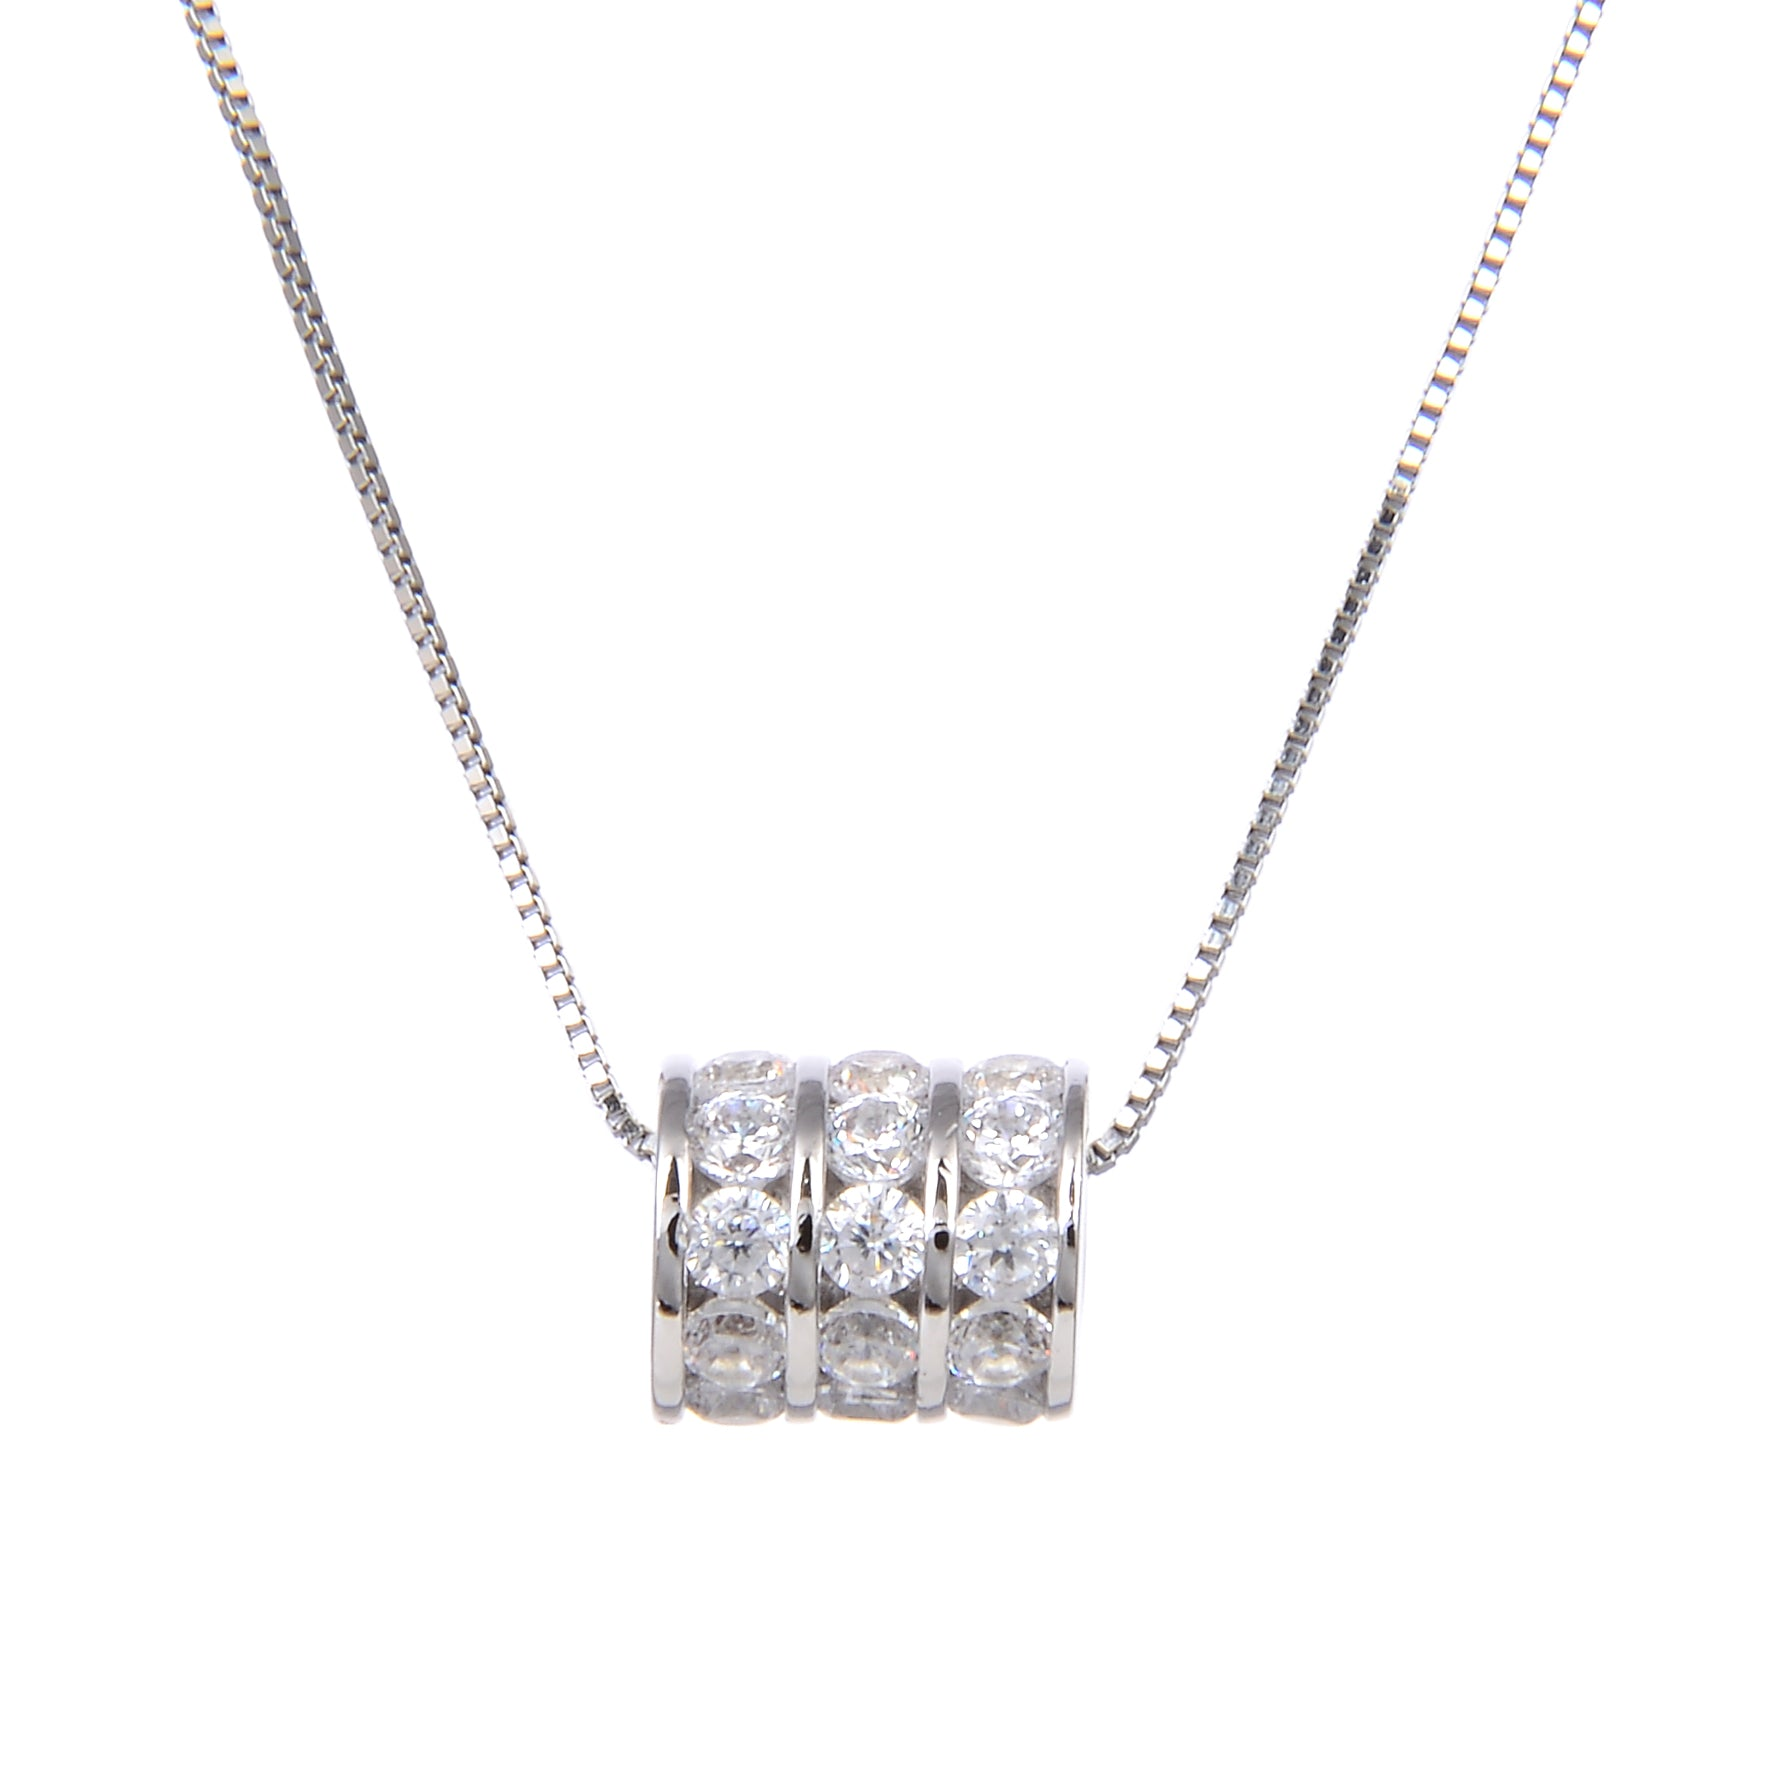 92.5 Sterling Silver CZ Cubic Zirconia Drum Shape Pendant with Sterling Silver Necklace Chain